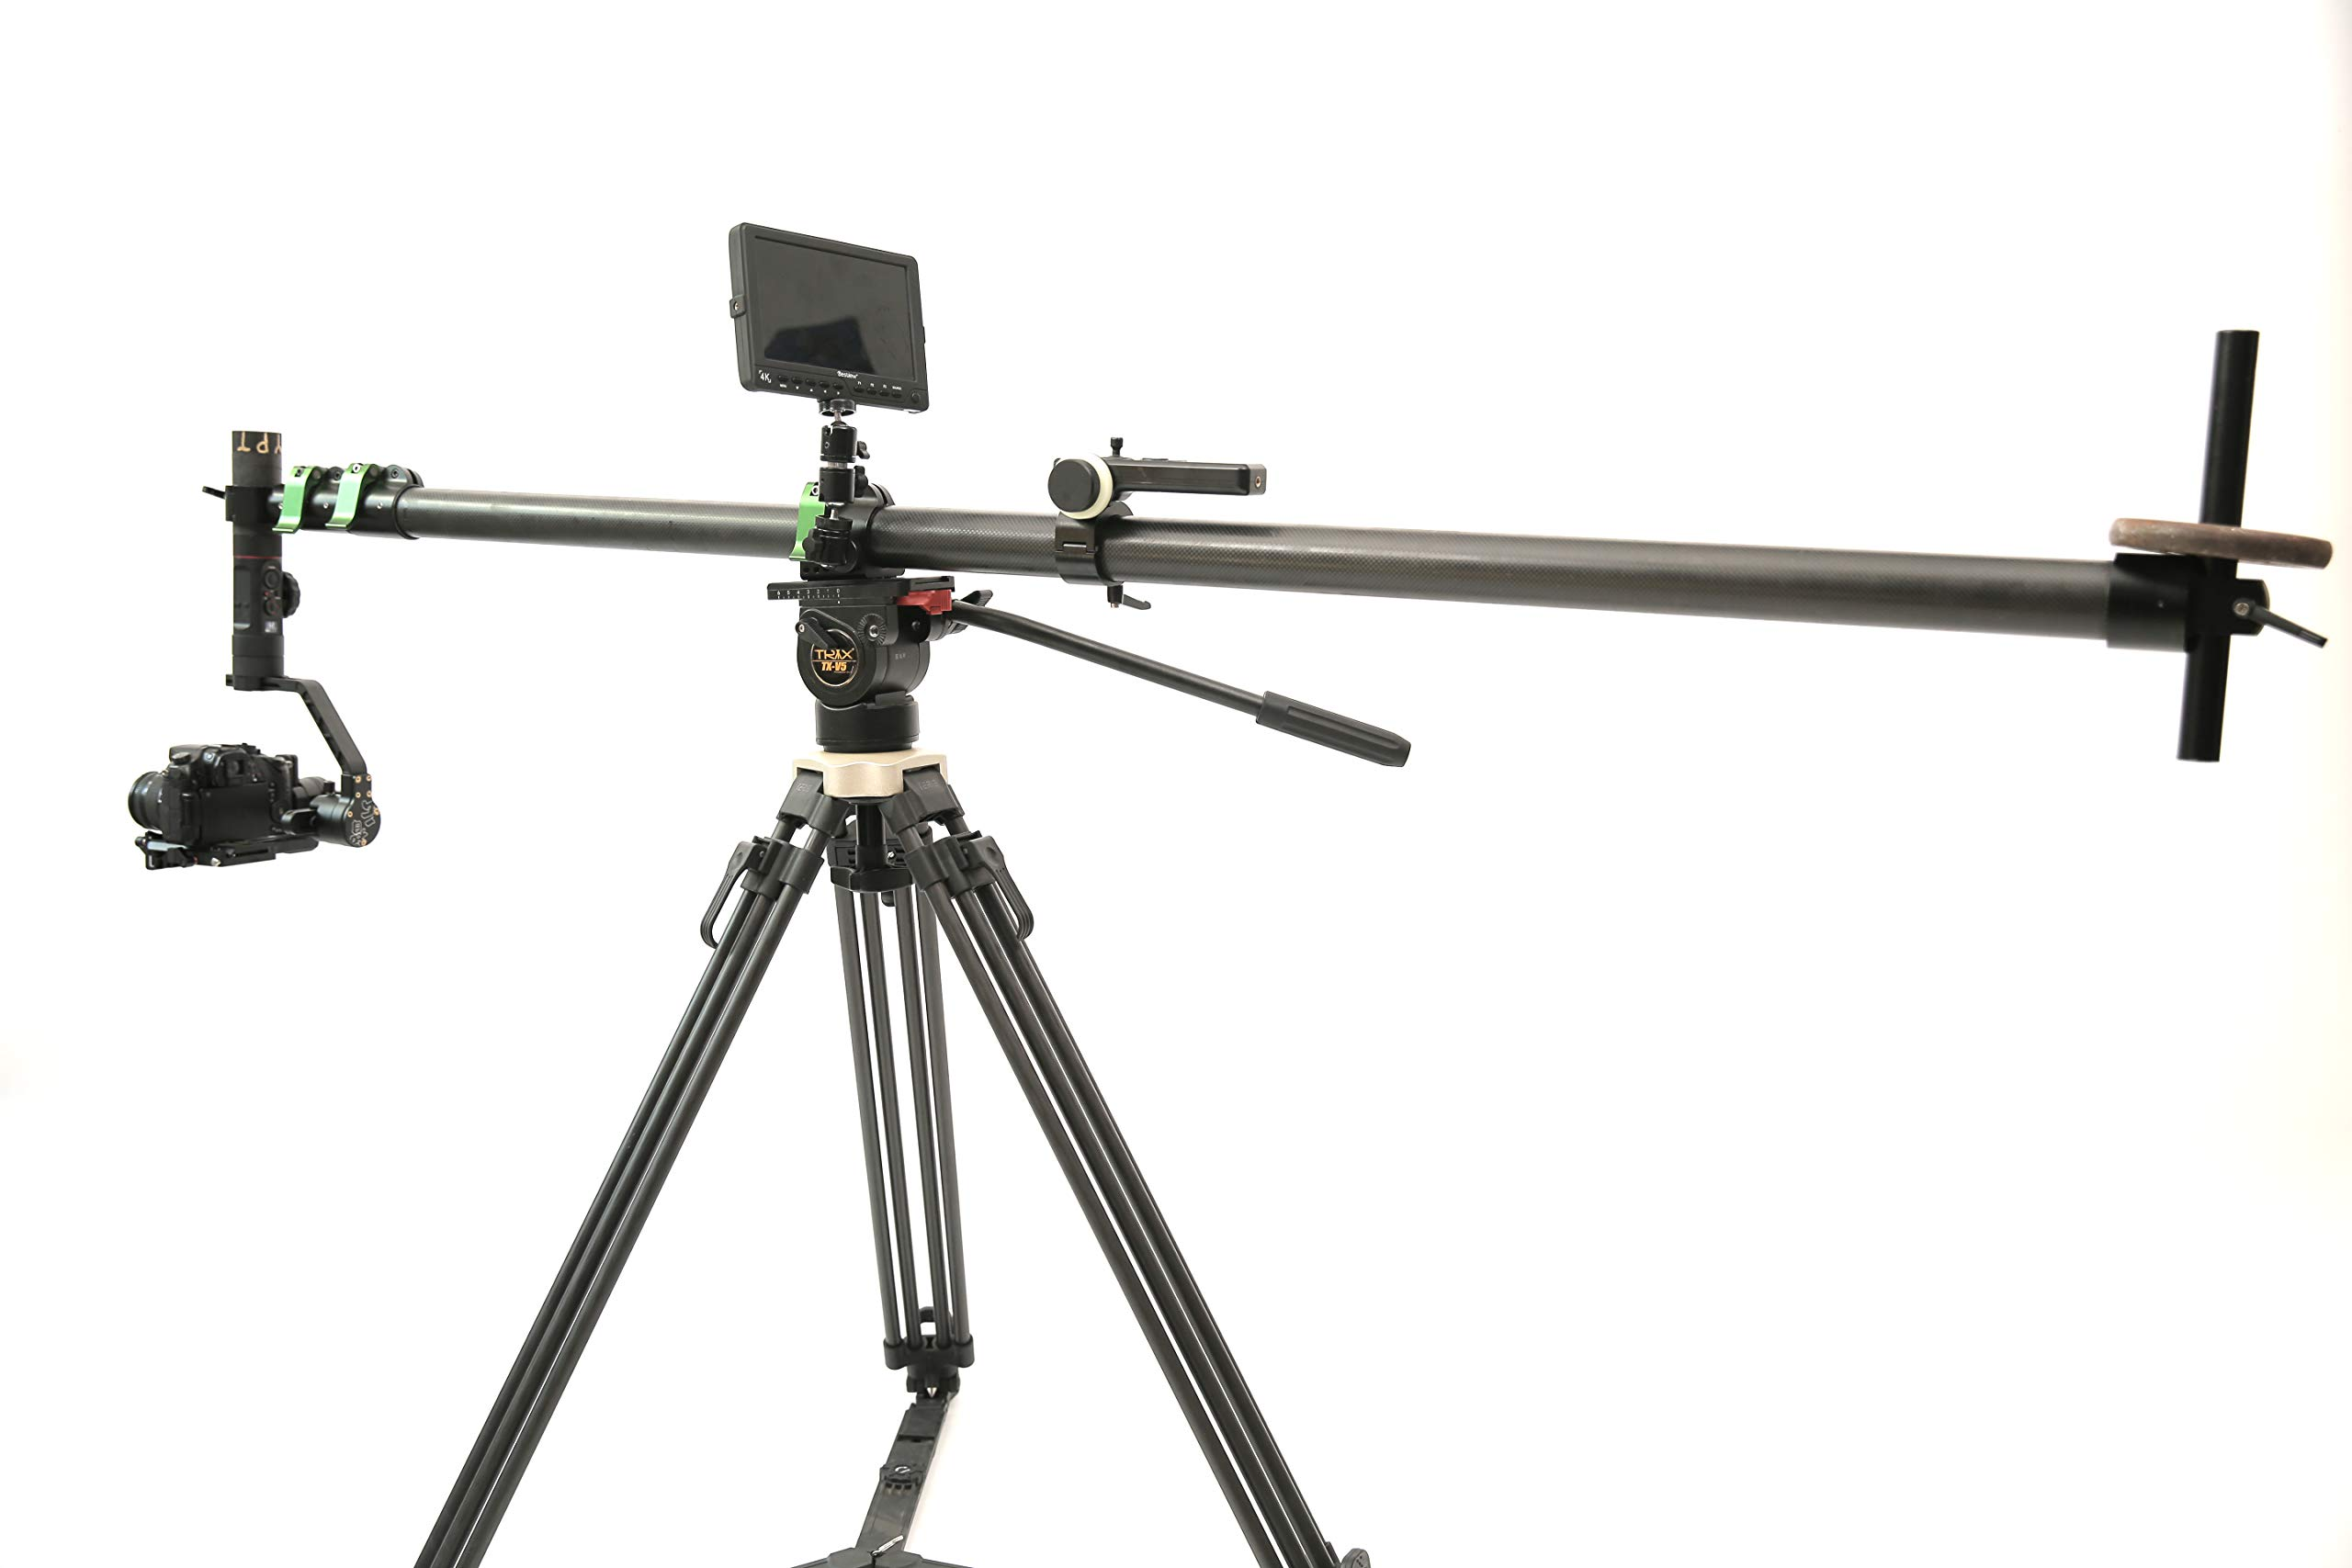 Teris 13ft Carbon Fiber Mini Jib Video Camera Cranes Hold up to 7.7lbs Foldable and Extendable Jib Arm with 1/4 & 3/8 inch Quick Release Plate for DJI Roins,ZHIYUN Crance2 by Teris